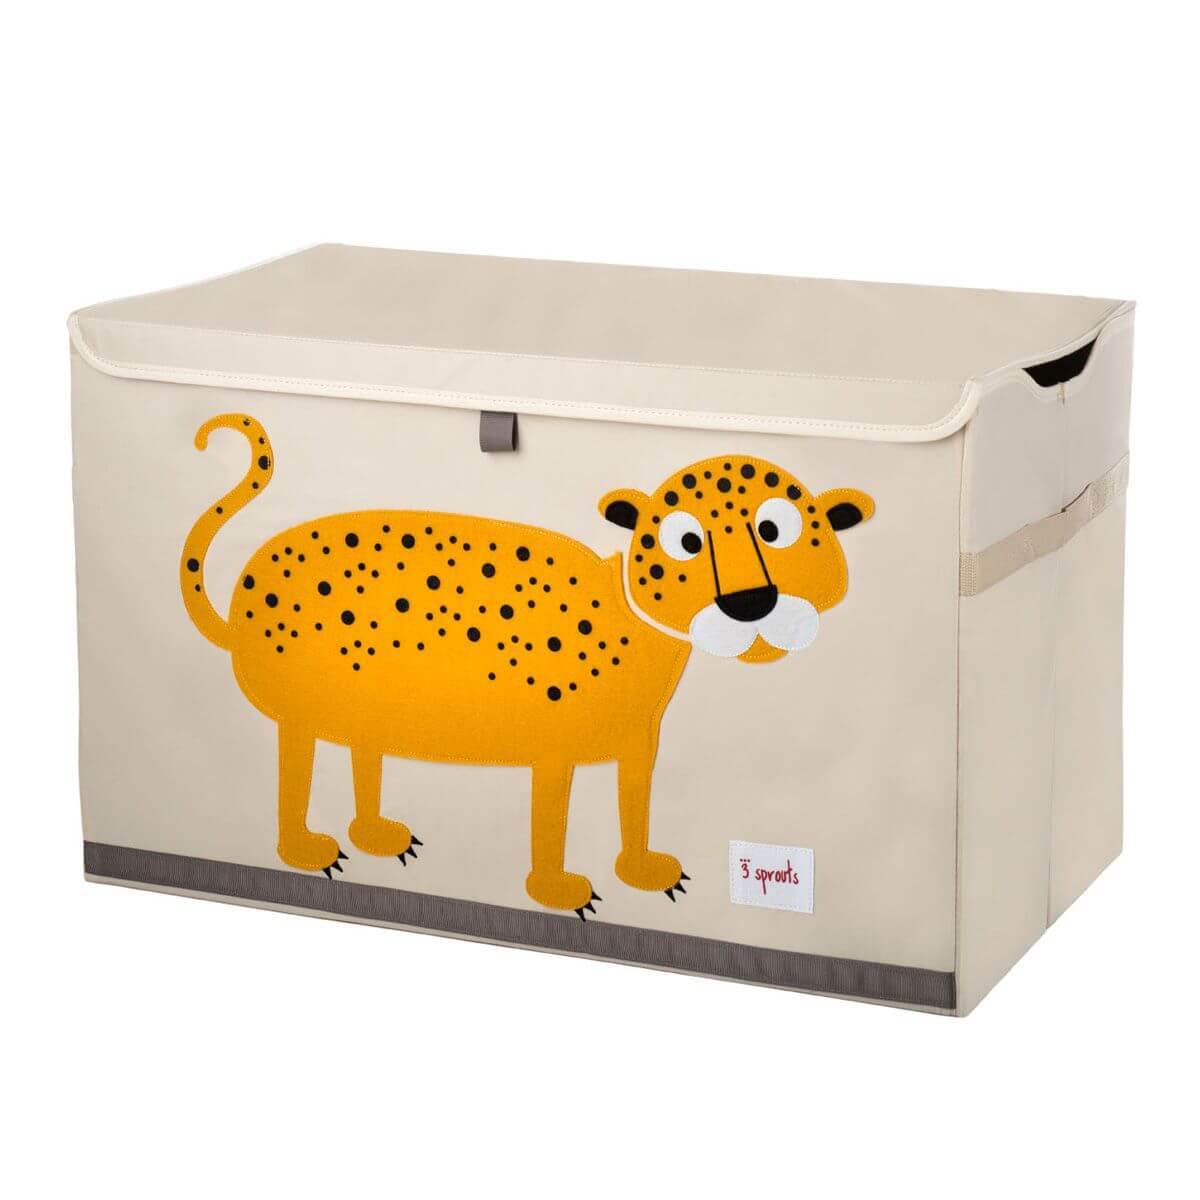 Neat Toy Box Ideas For The Childrens Room Interior Design